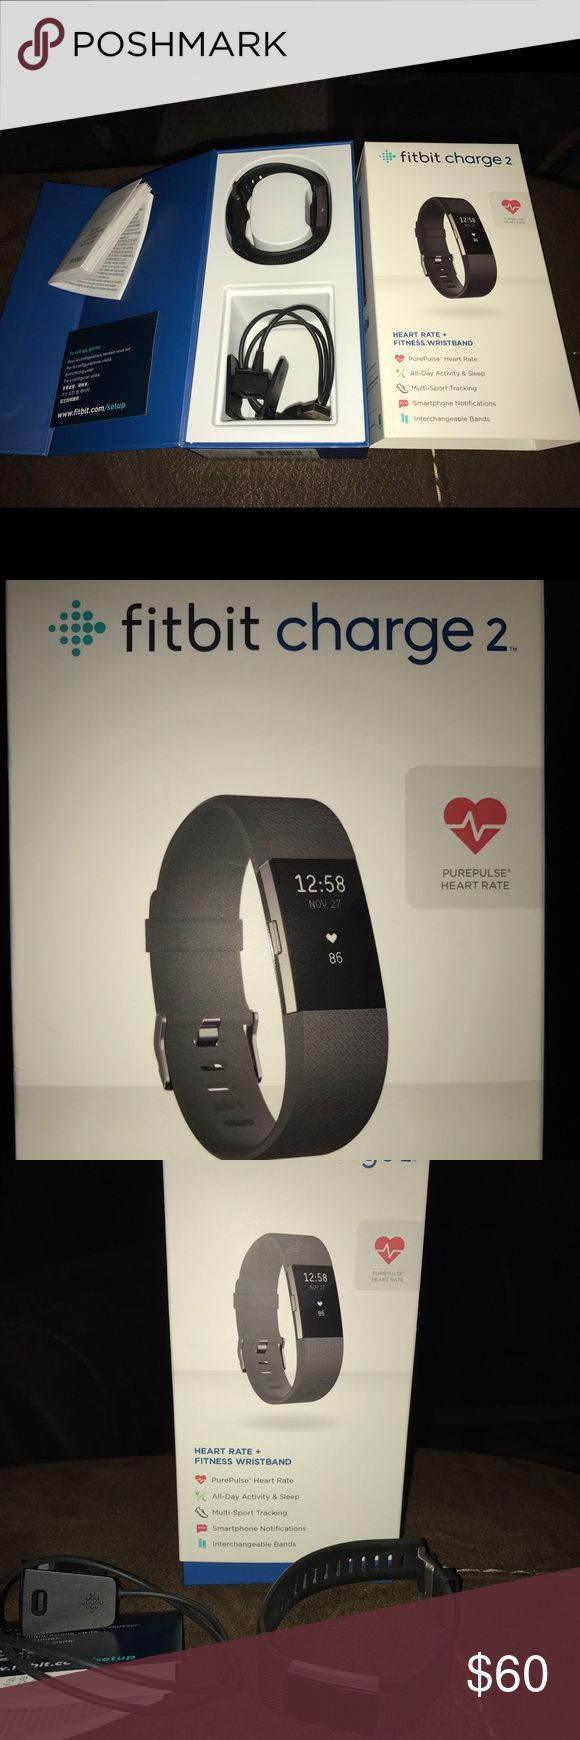 Fitbit Charge 2 Like New Fitbit Charge 2 size large with original box , black band and charger. Great activity, multi-sport tracker with smart phone notifications. Works with Apple and Android products. Fitbit Accessories Watches